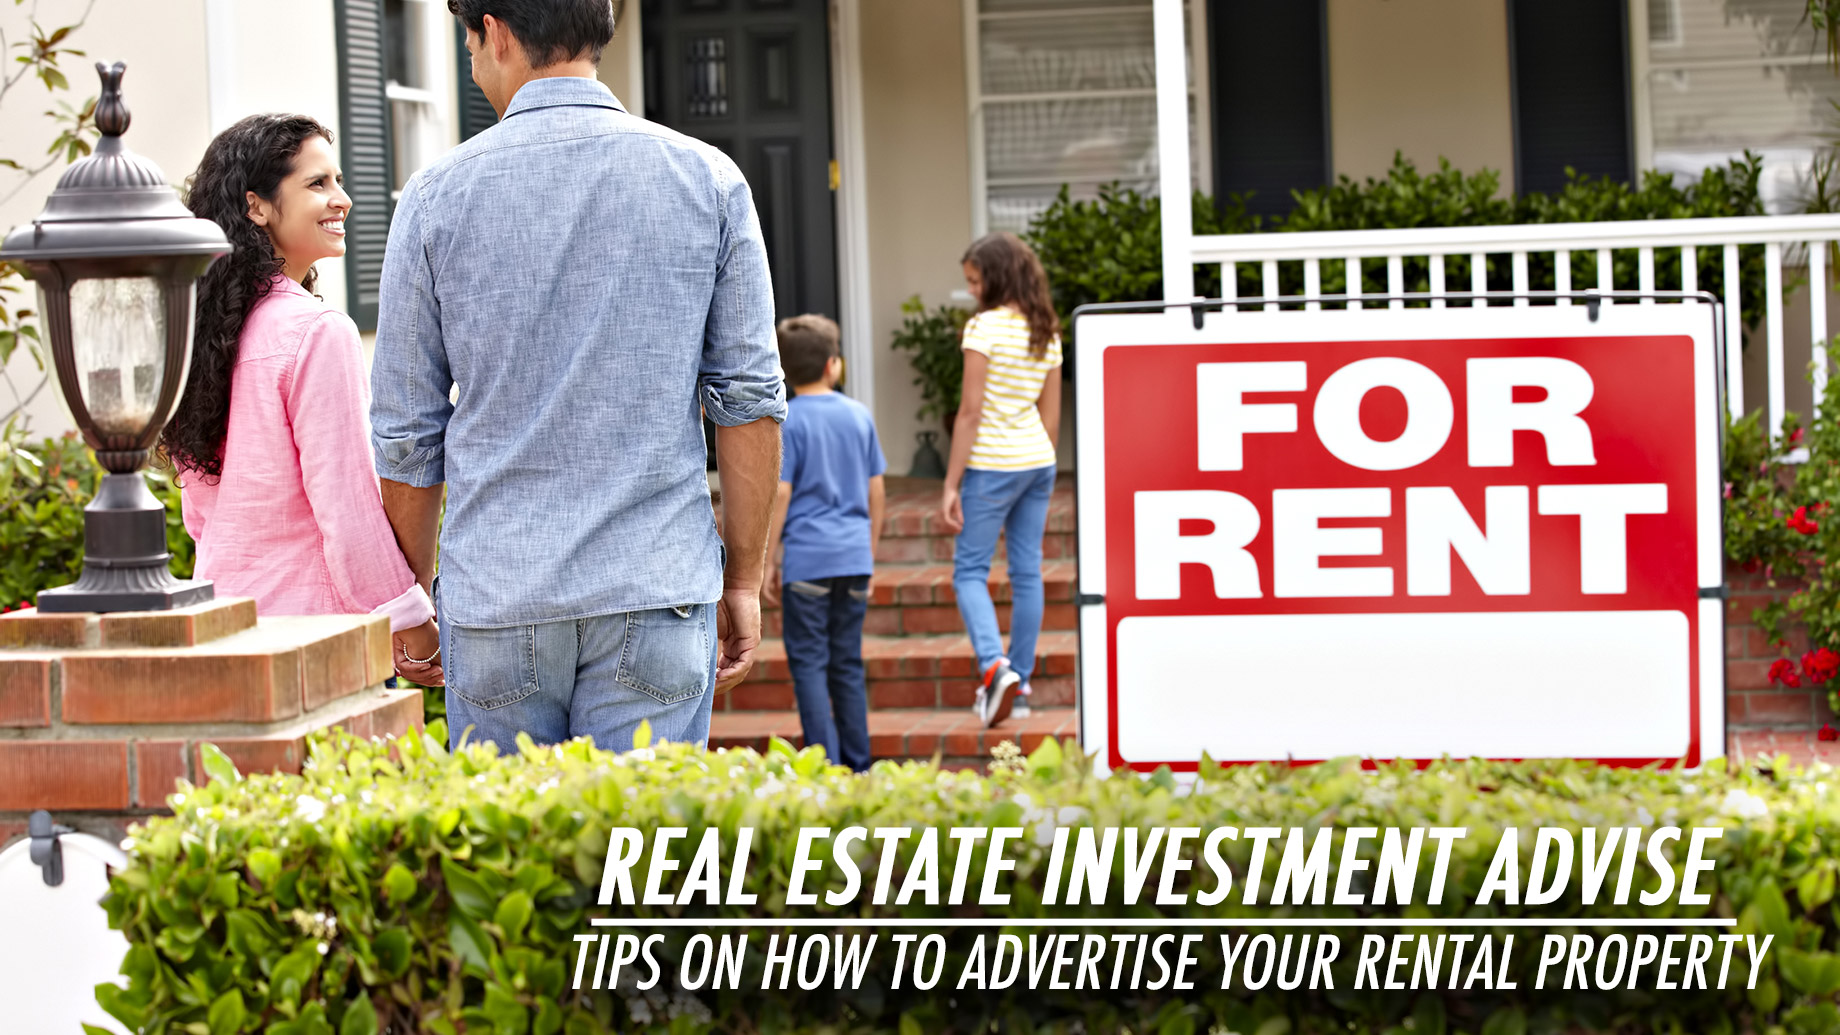 Real Estate Investment Advise - Tips on How to Advertise Your Rental Property